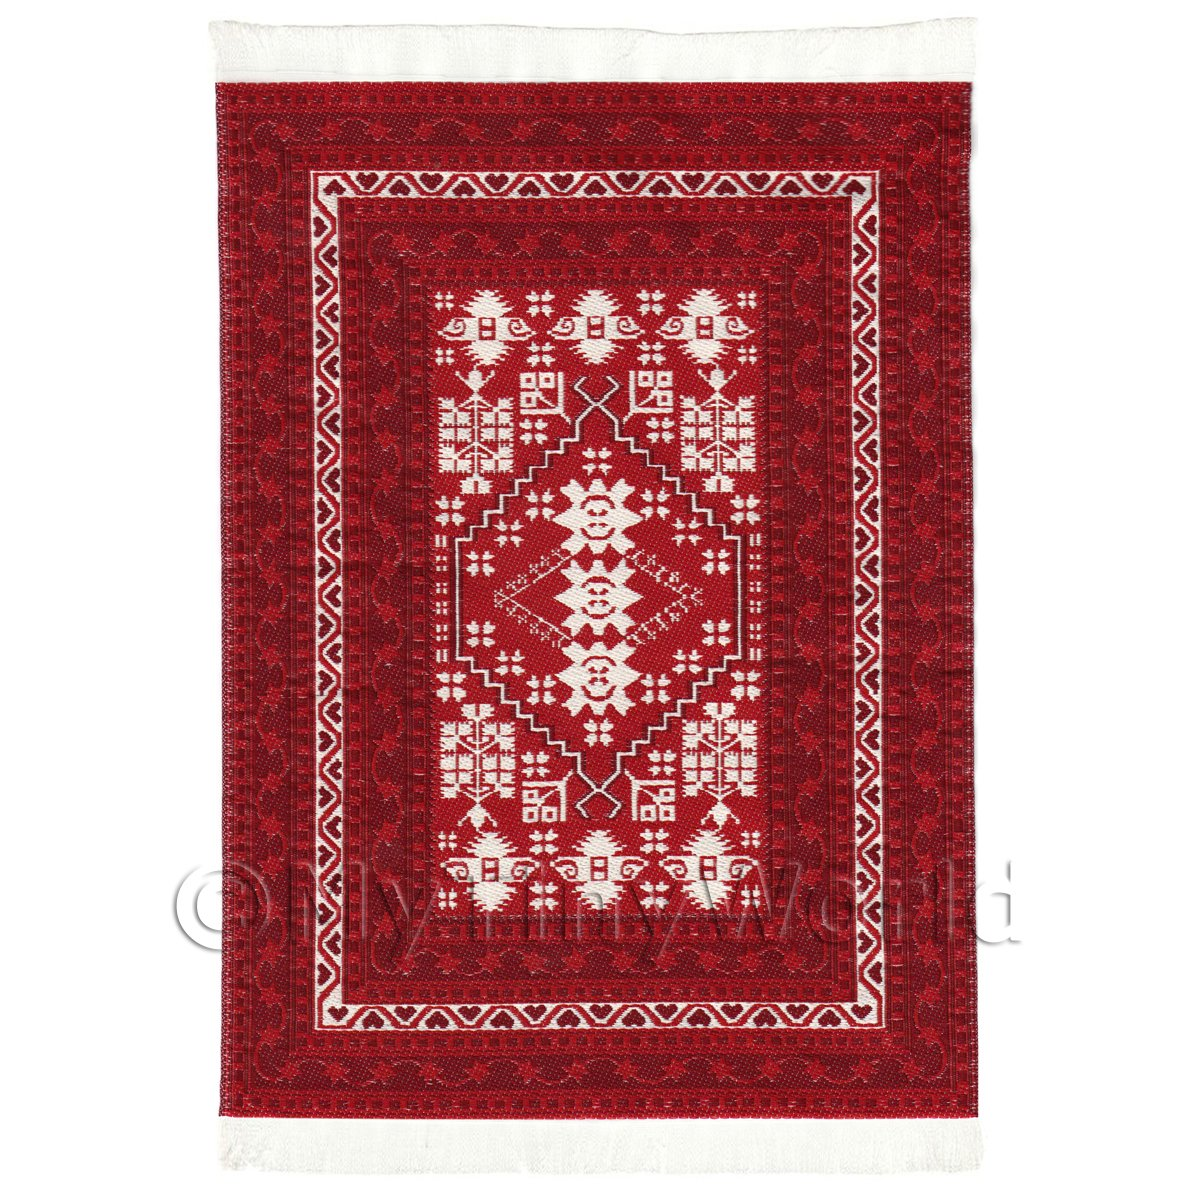 Dolls House Medium 16th Century Rectangular Carpet / Rug (16NMR06)